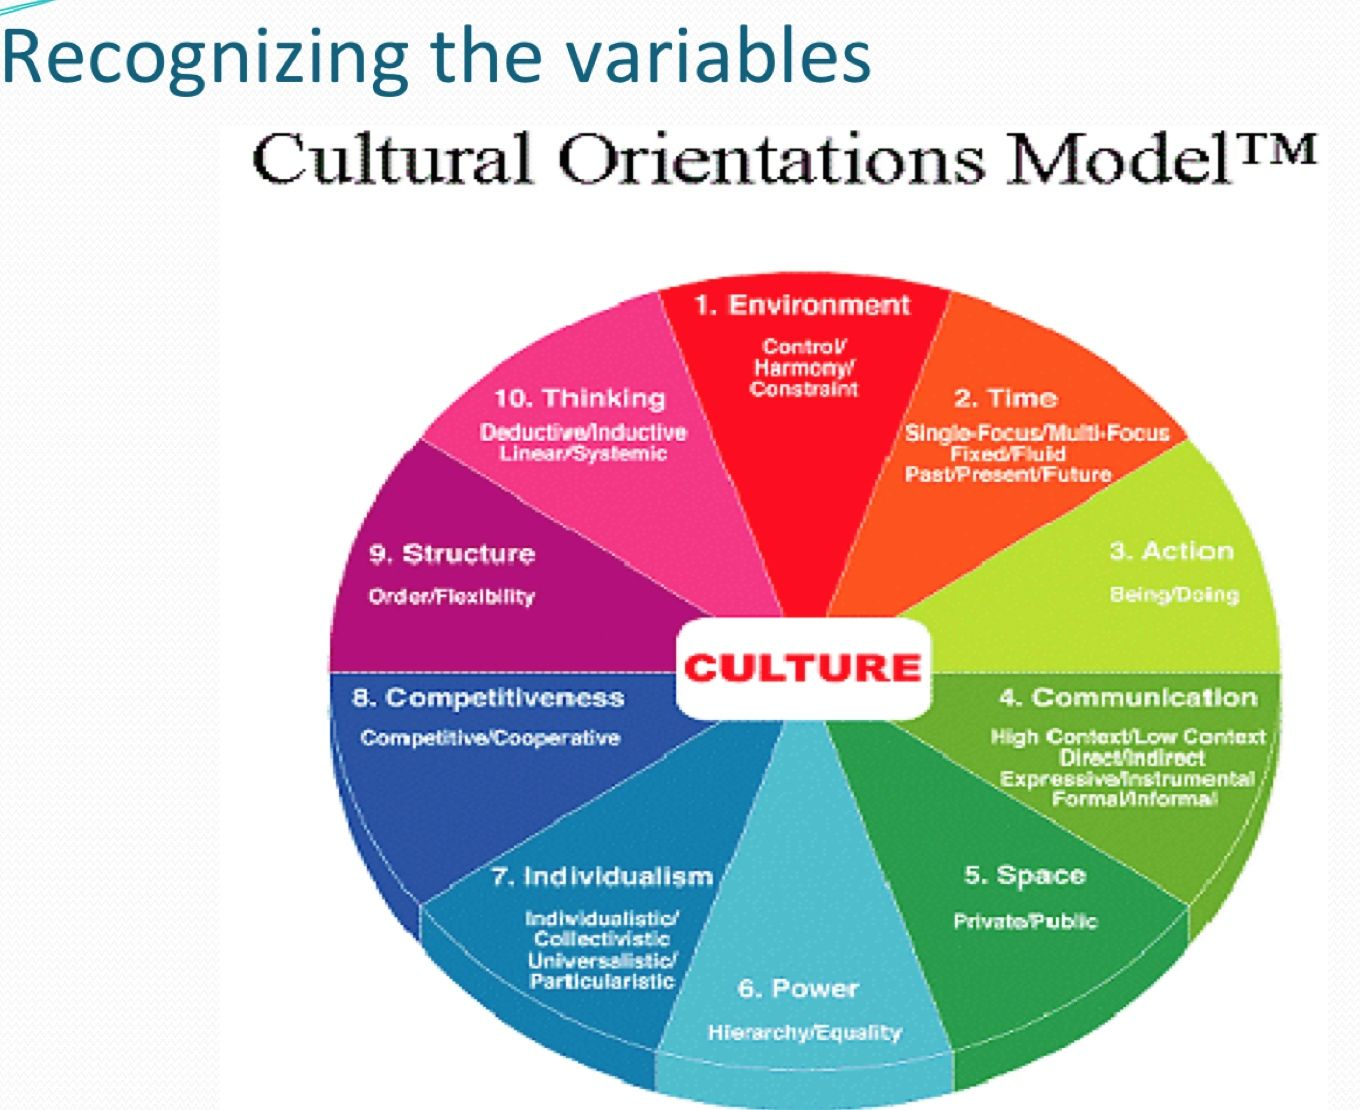 cultural dimensions 2 essay The founding role of edward t hall this essay explores (1) the development of the original paradigm for intercultural communication, and (2) how this paradigm was followed by scholars  cultural anthropology, (2) linguistics, (3) ethology, the study of animal behavior, and (4) freudian psychoanalytic theory  books the hidden dimension.